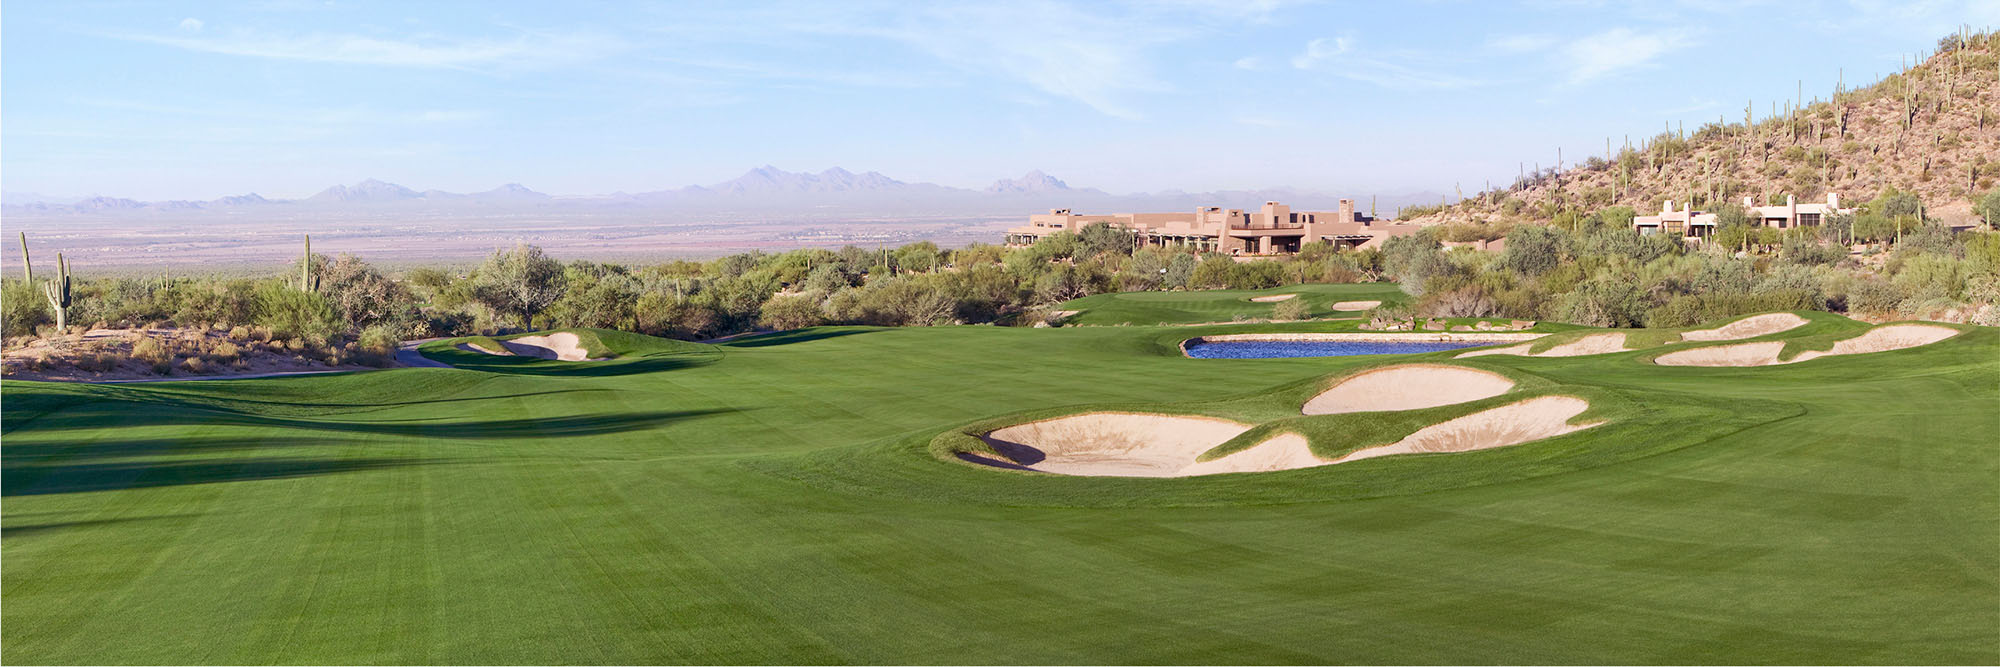 Golf Course Image - The Gallery North Course No. 9